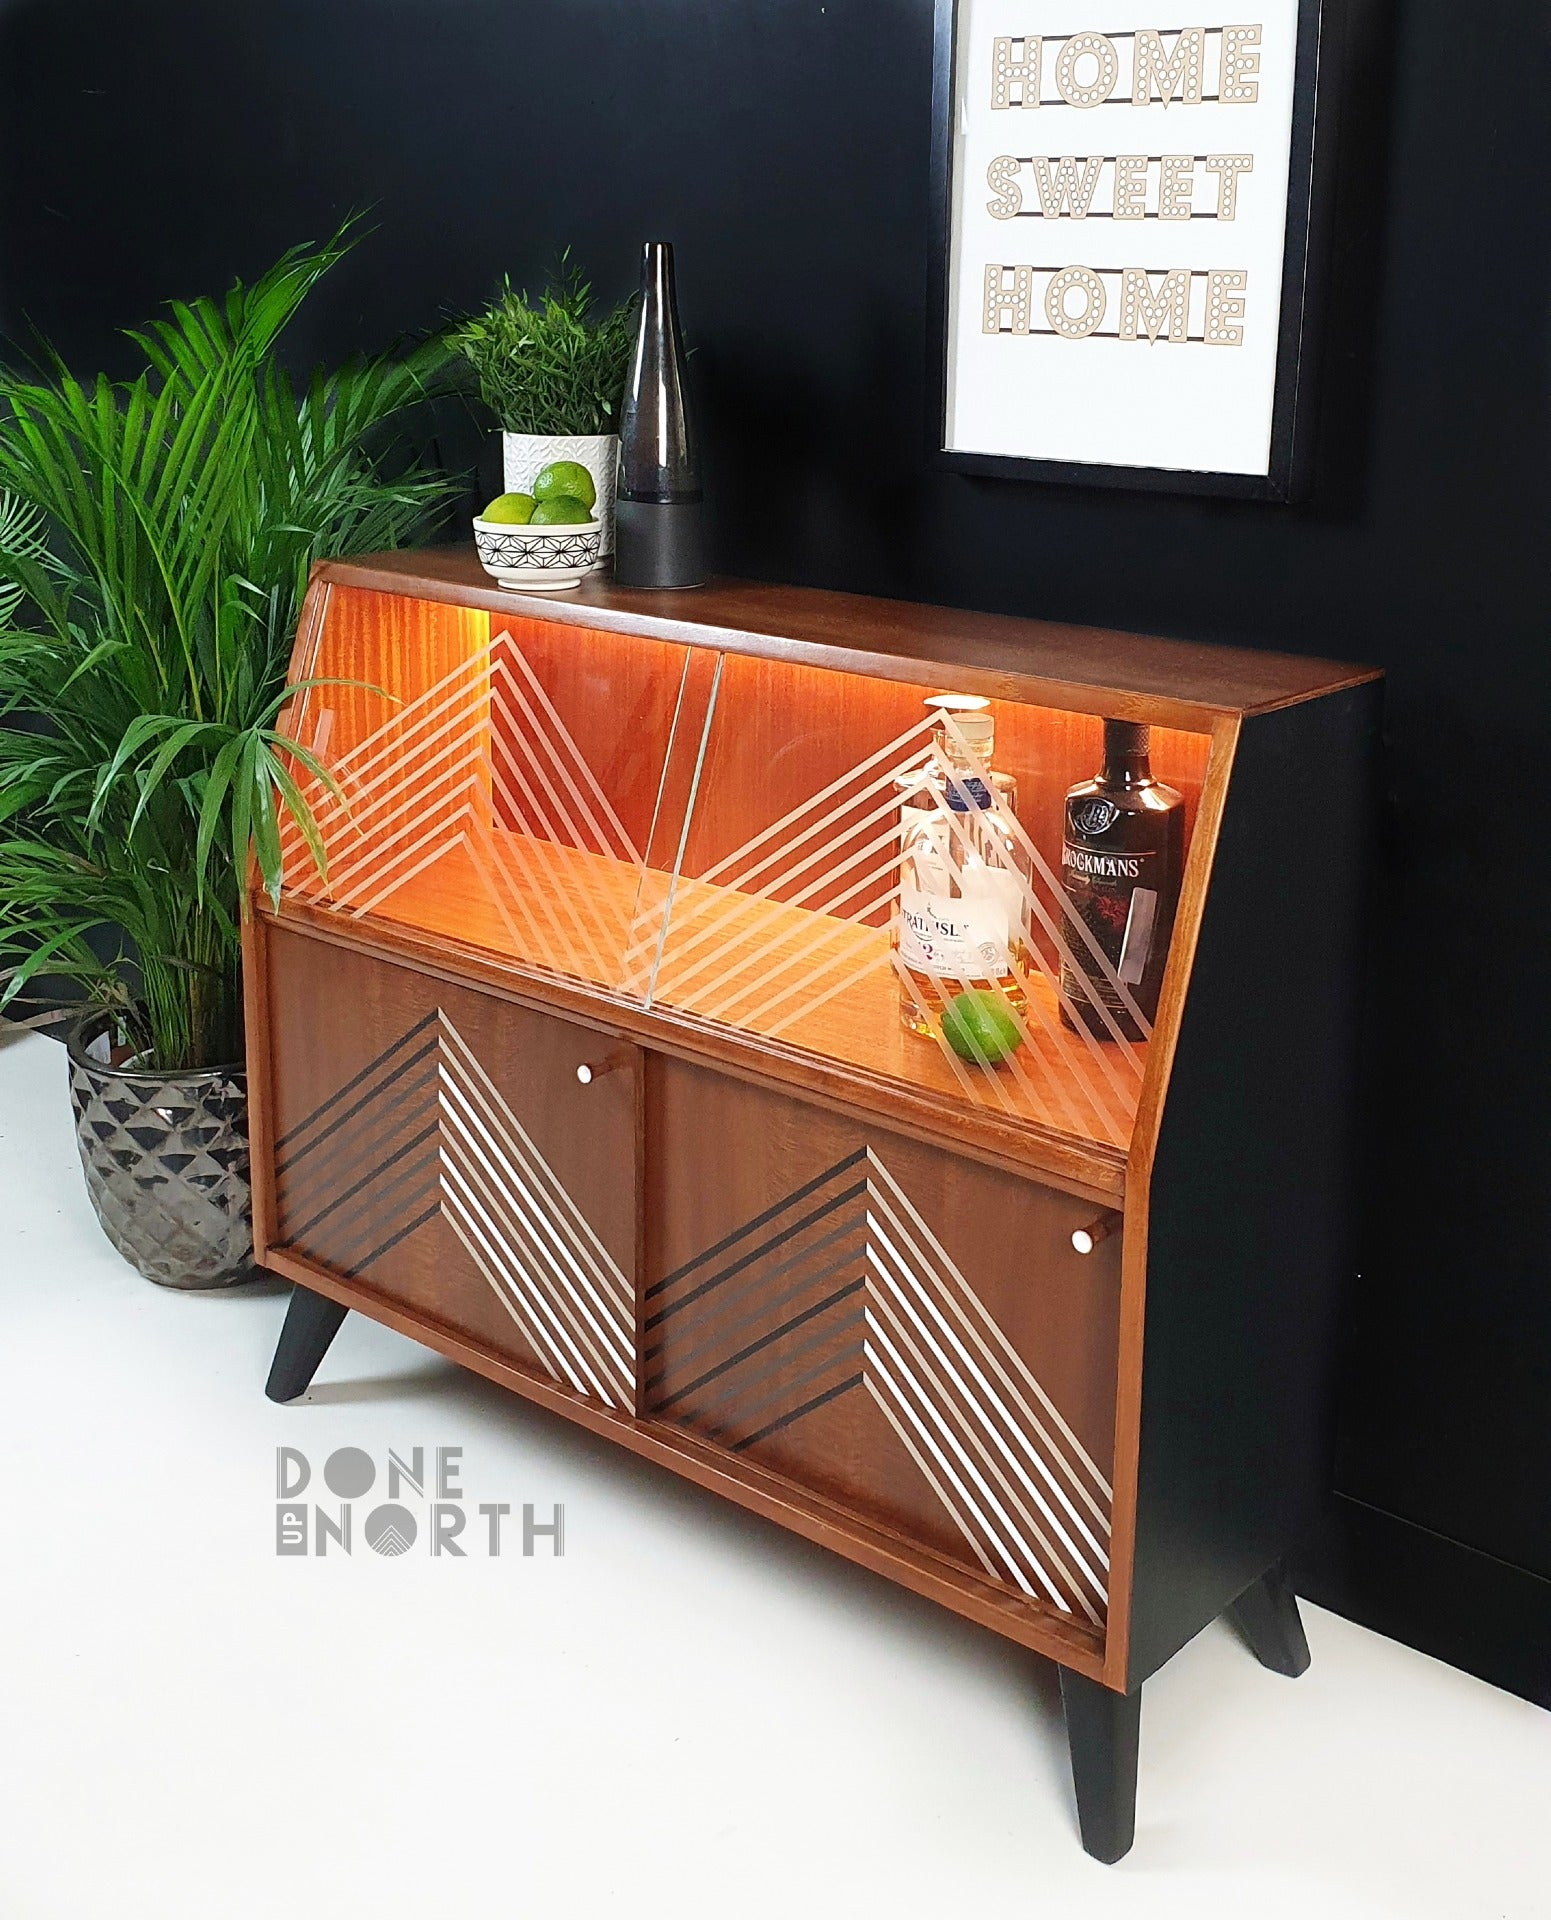 Done up North geometric cocktail sideboard